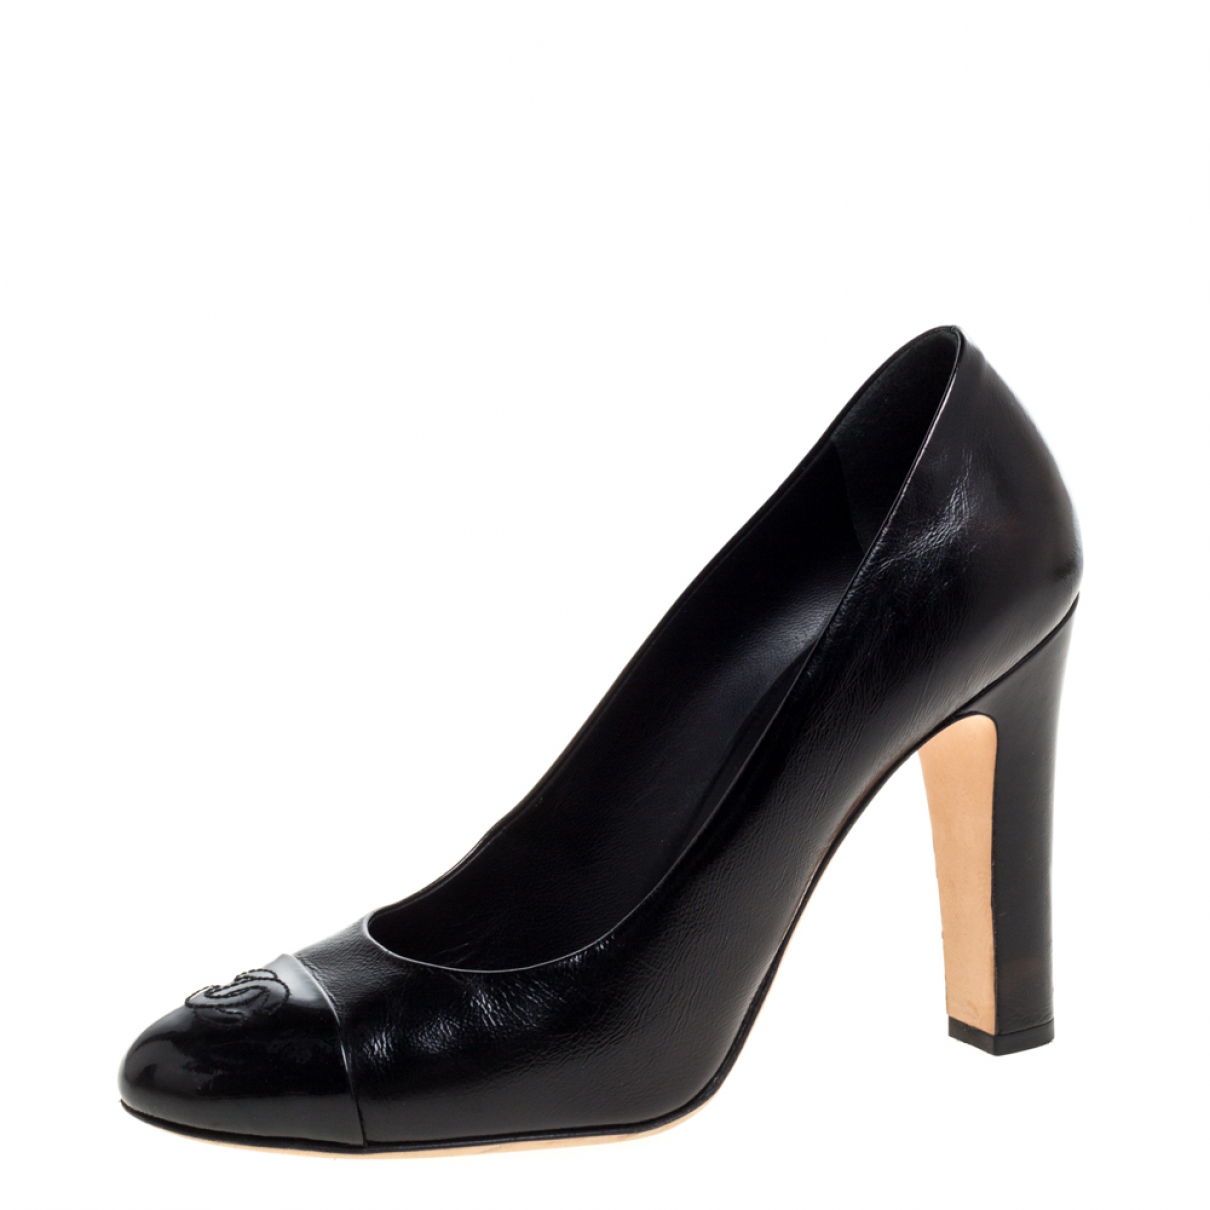 Chanel N Black Leather Sandals for Women 8 US